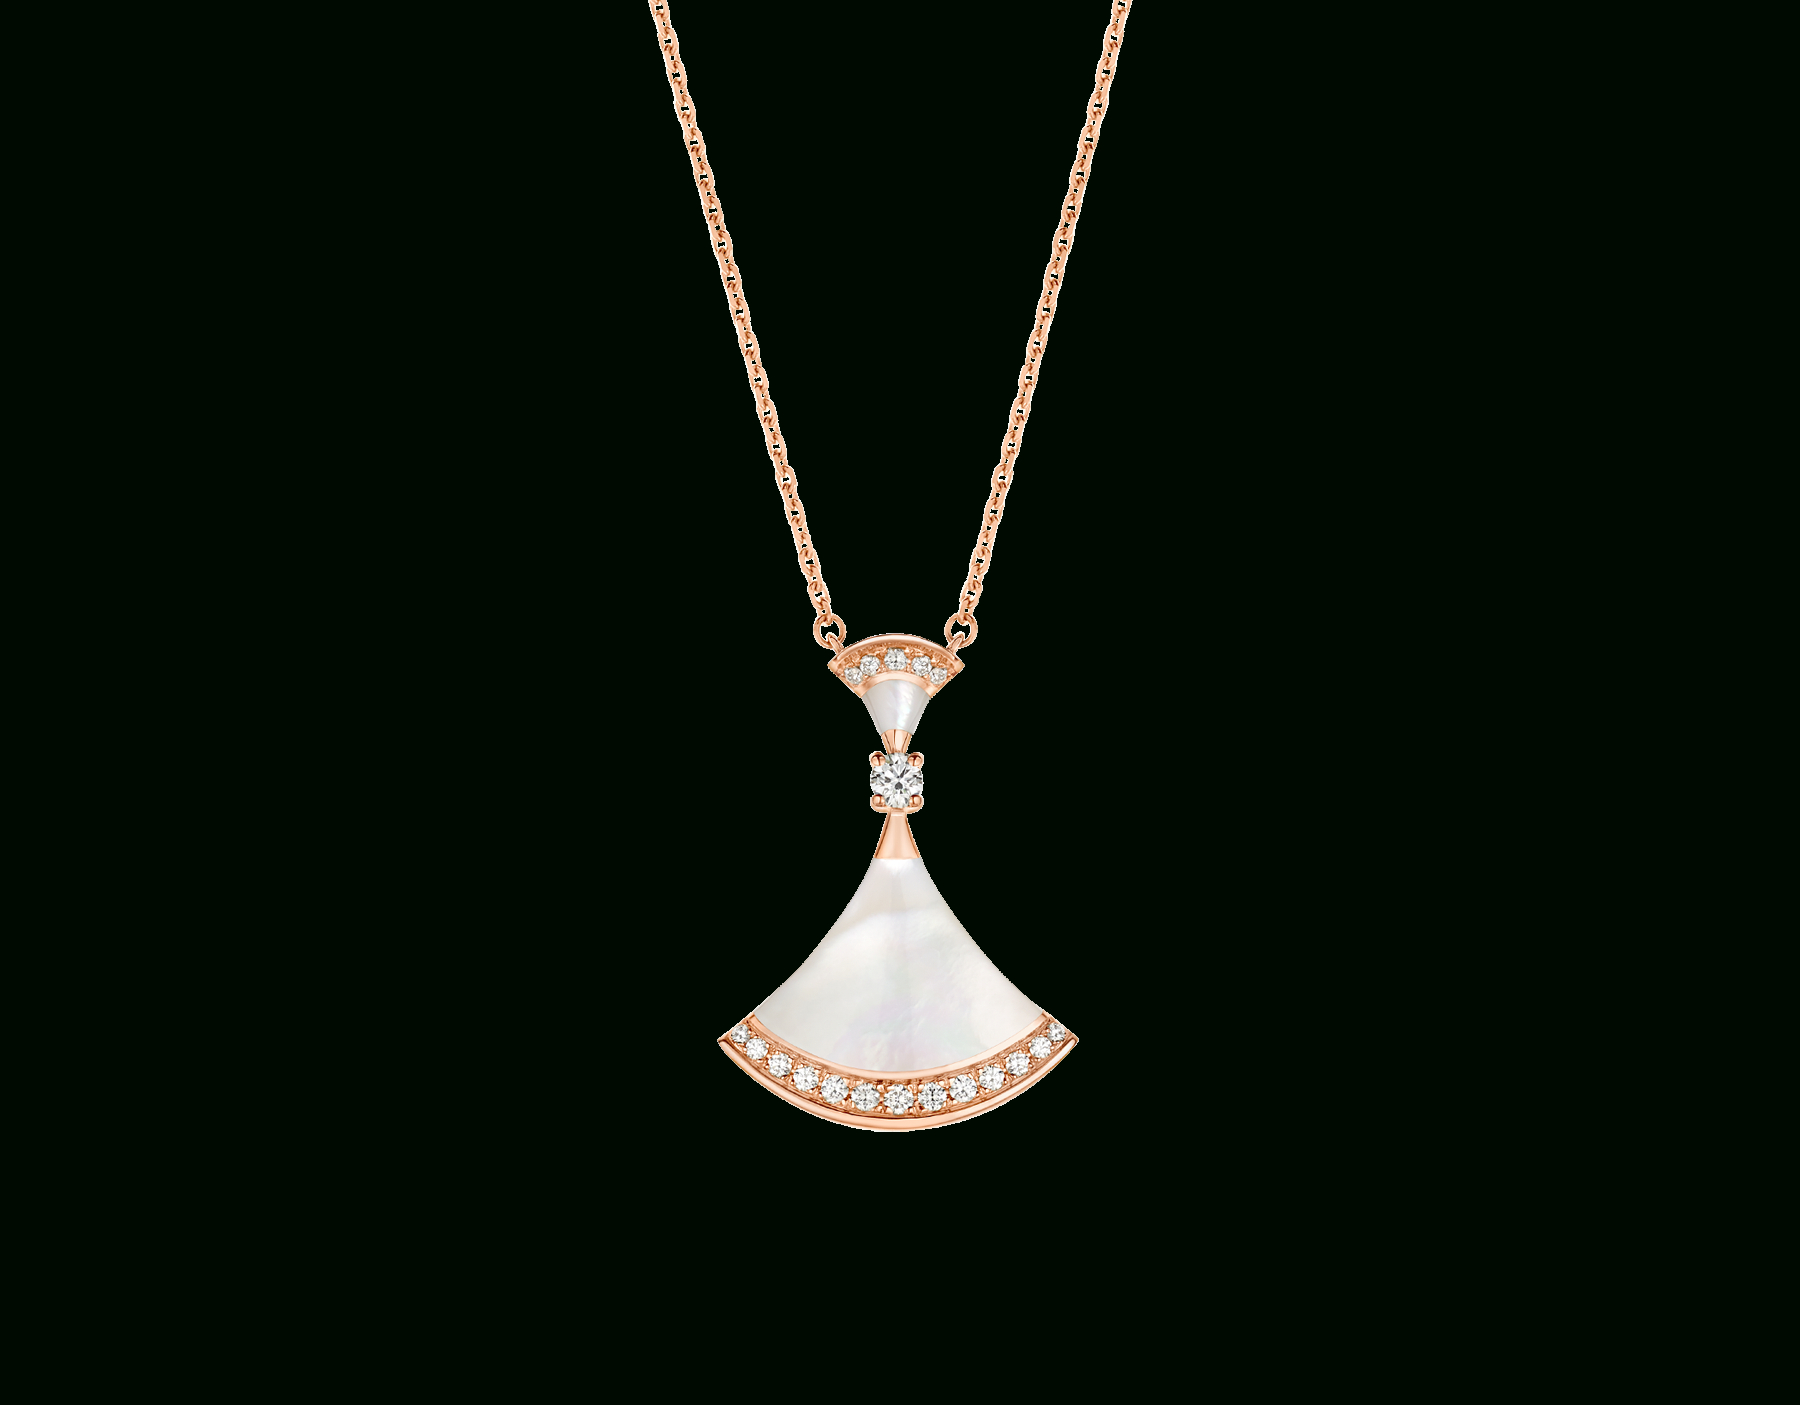 Divas' Dream Necklace 356452 | Bvlgari Pertaining To Most Up To Date Pavé Locket Element Necklaces (View 3 of 25)